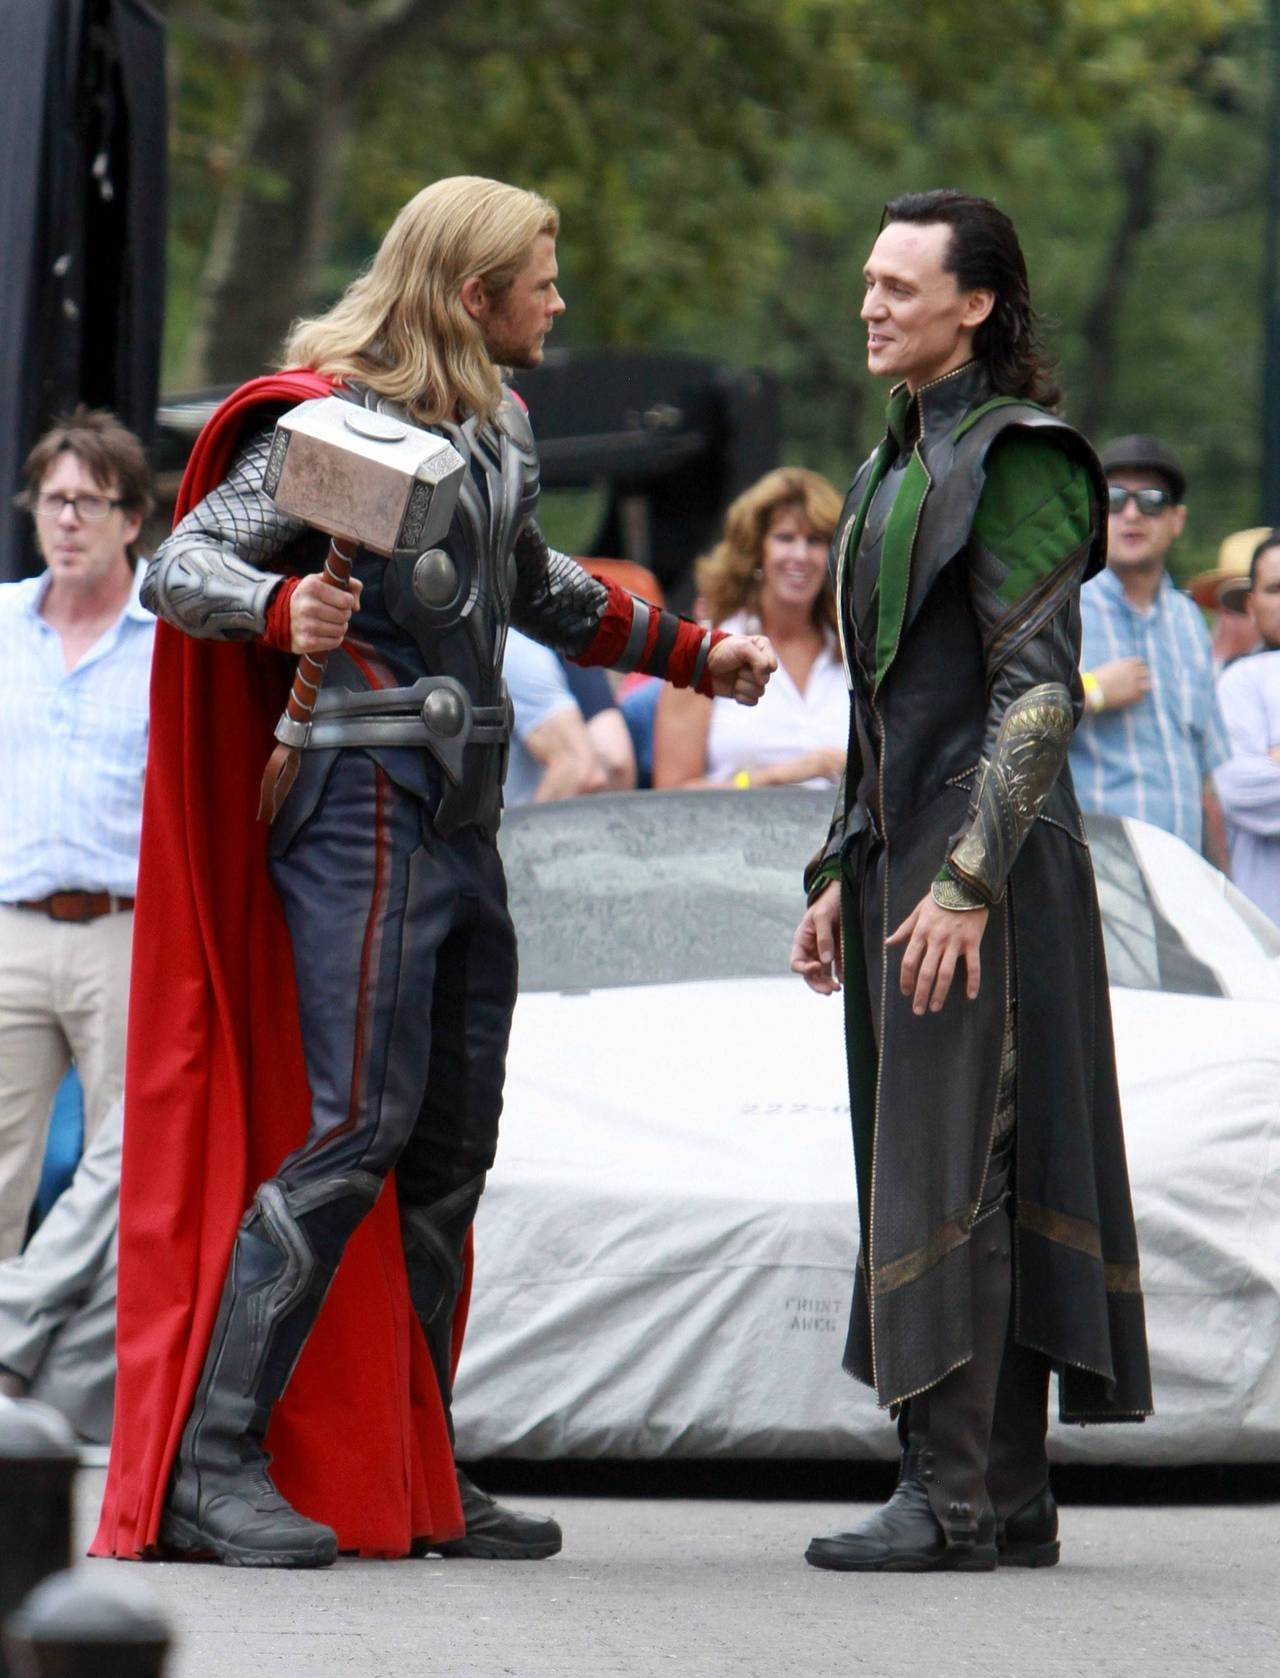 Hilarious Behind The Scene picture of Loki and Thor.